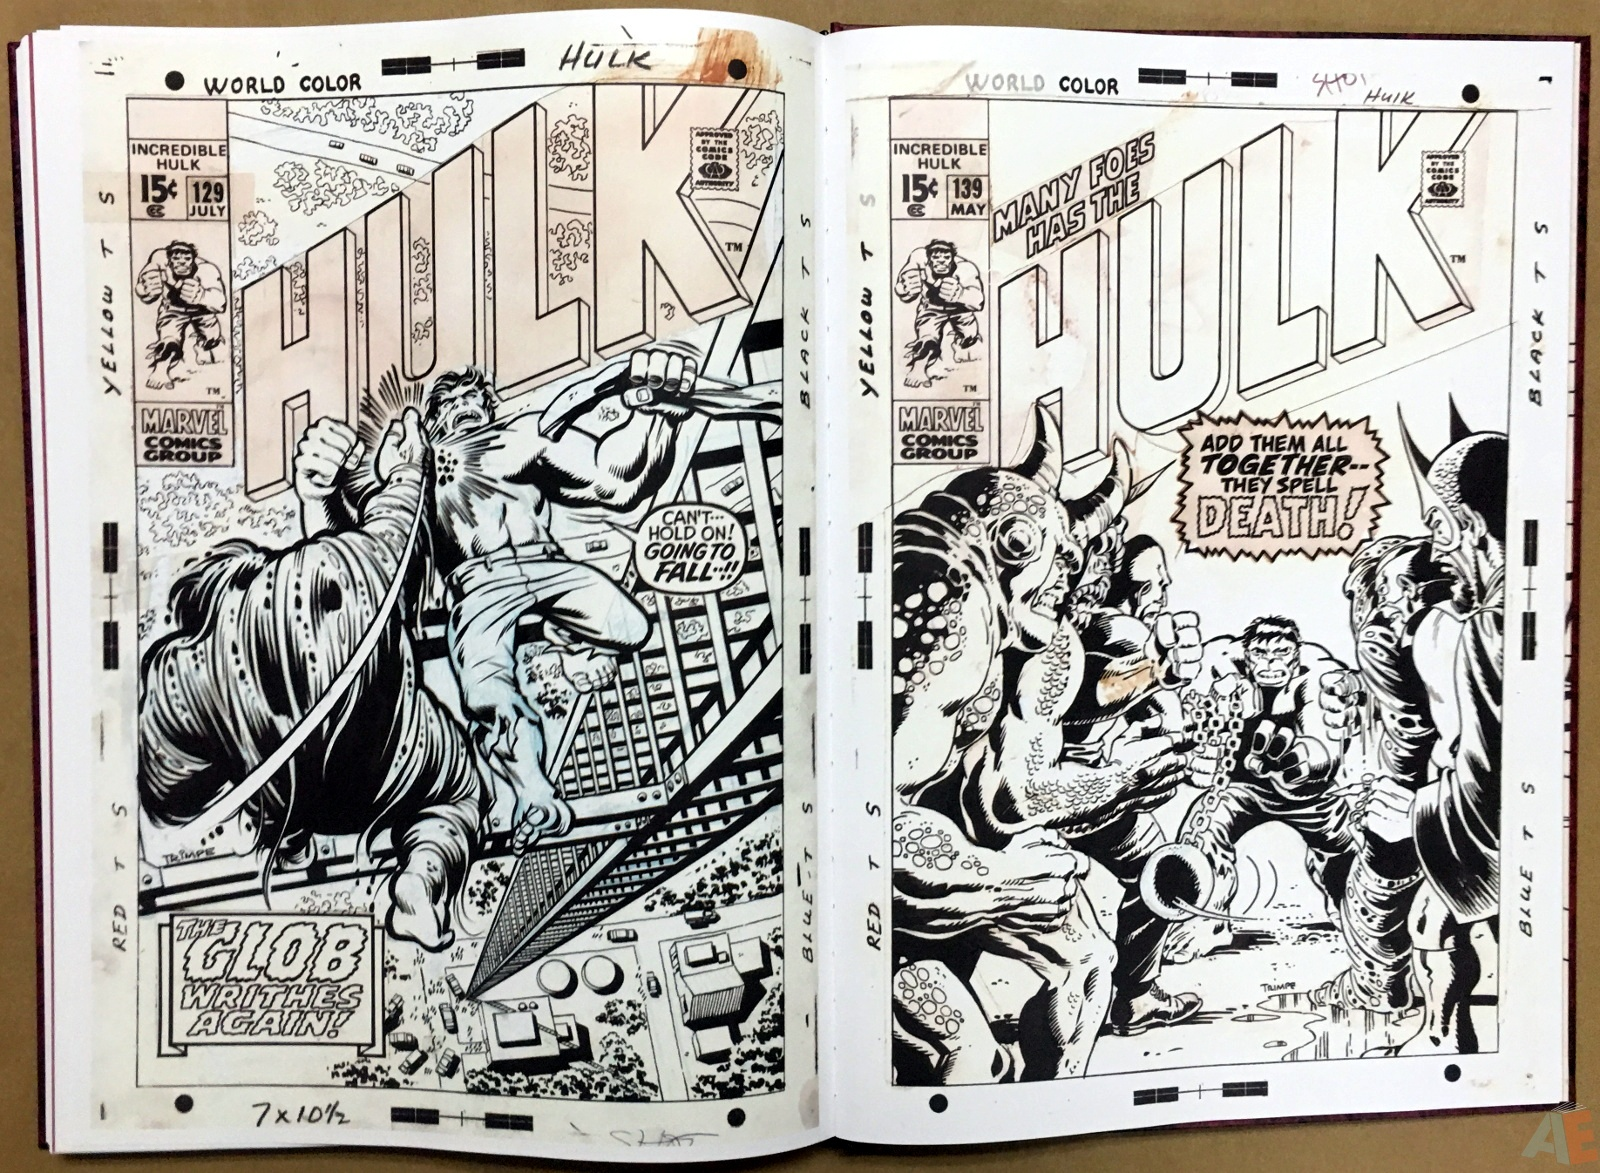 Herb Trimpe's The Incredible Hulk Artist's Edition 48